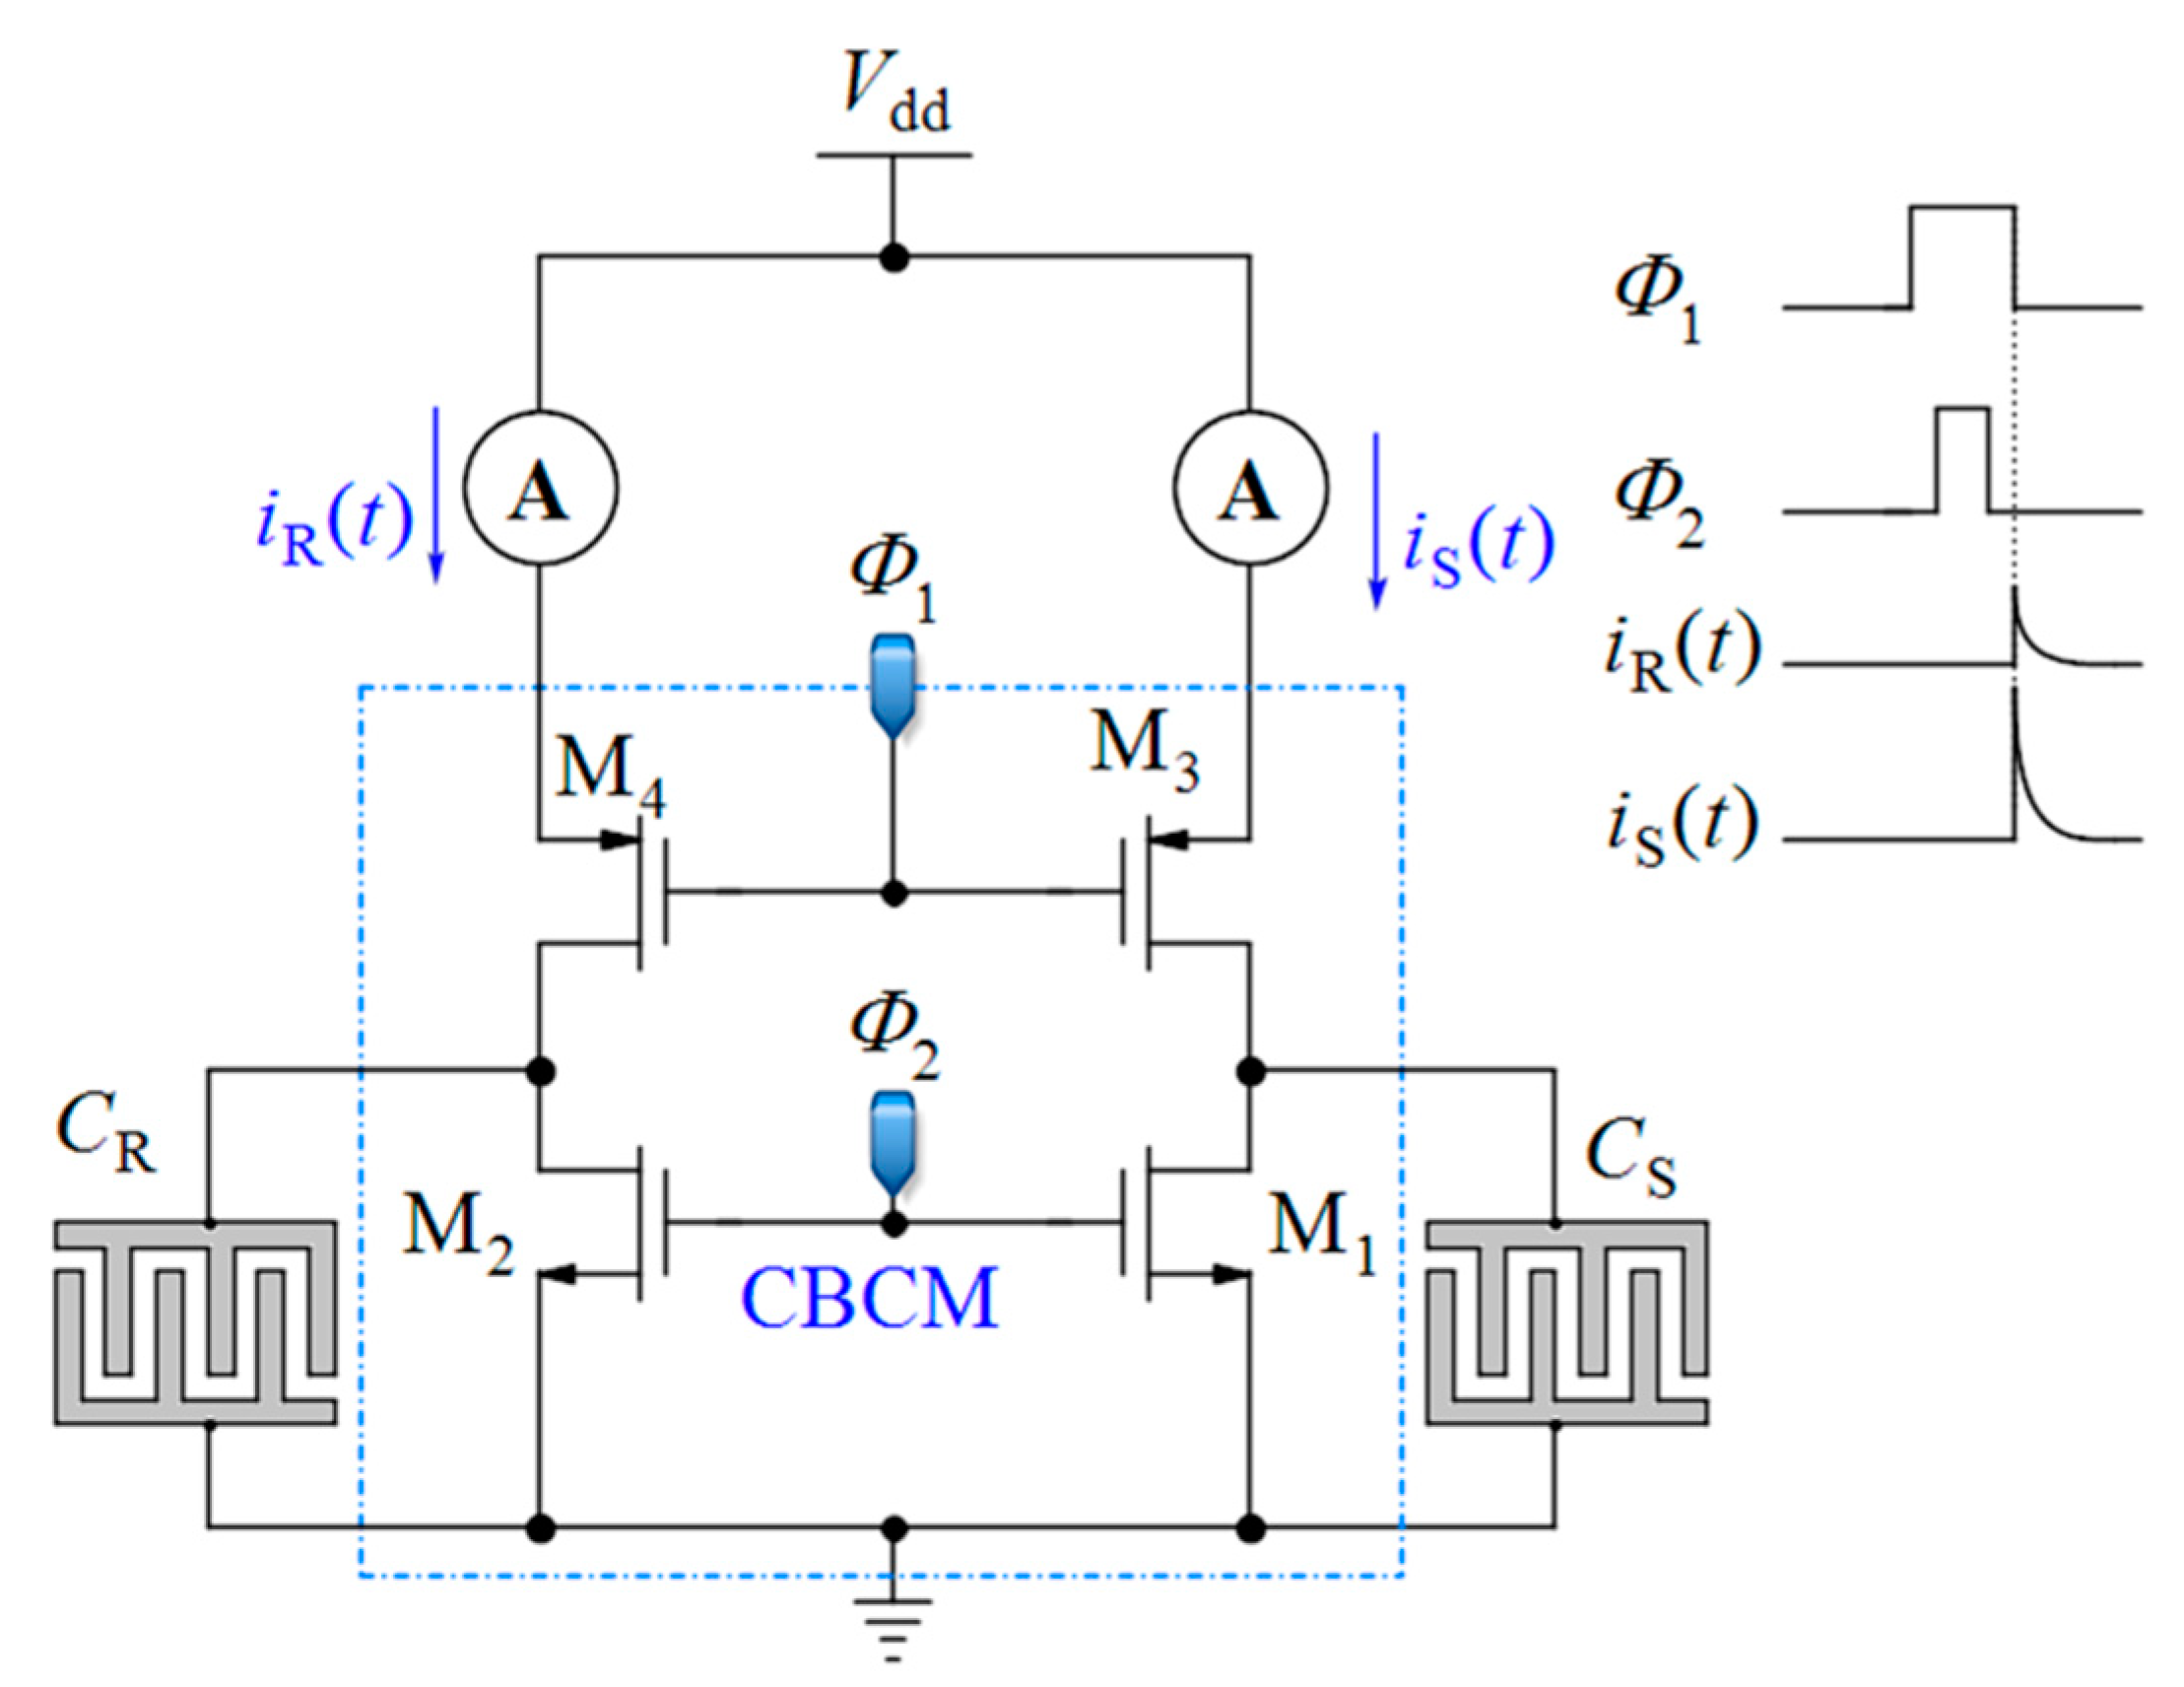 Capacitance Cmos Circuit Basic Diagram Trusted Schematics Ttl Inverter Oscillator Sensors Free Full Text Toward High Throughput Core Cbcm Switch